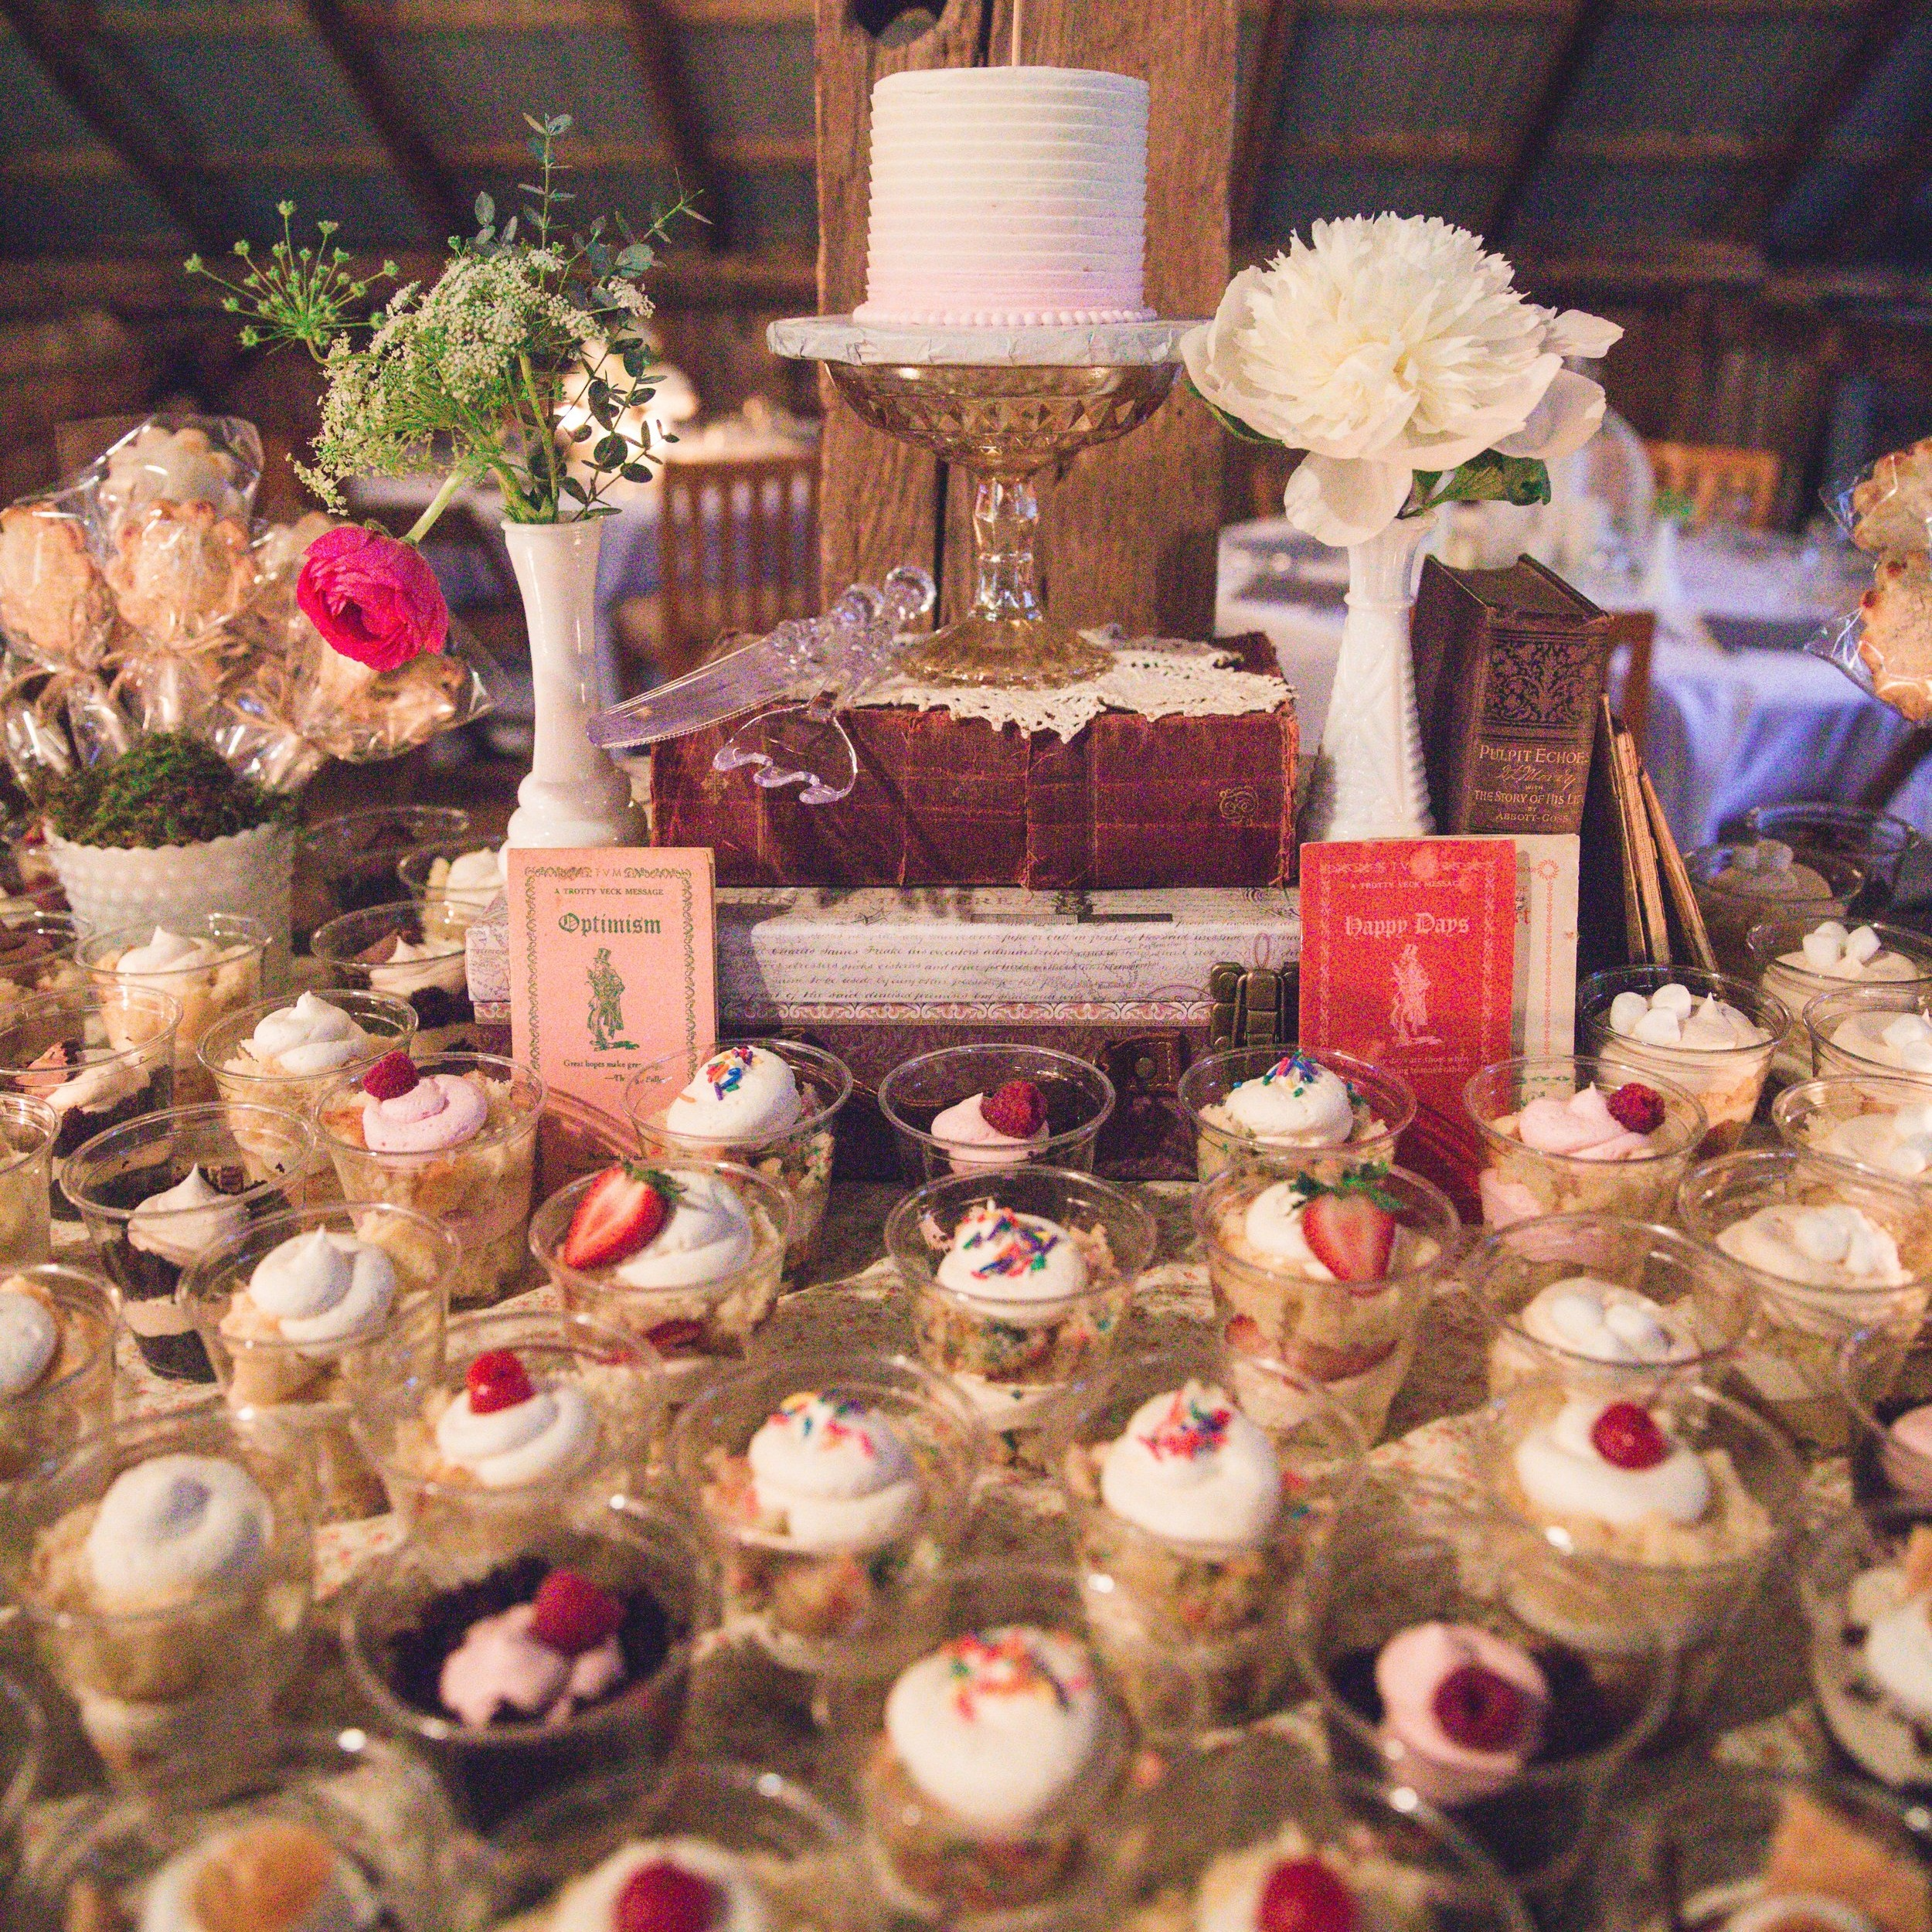 weddings - for a sweet ending to your new beginning…